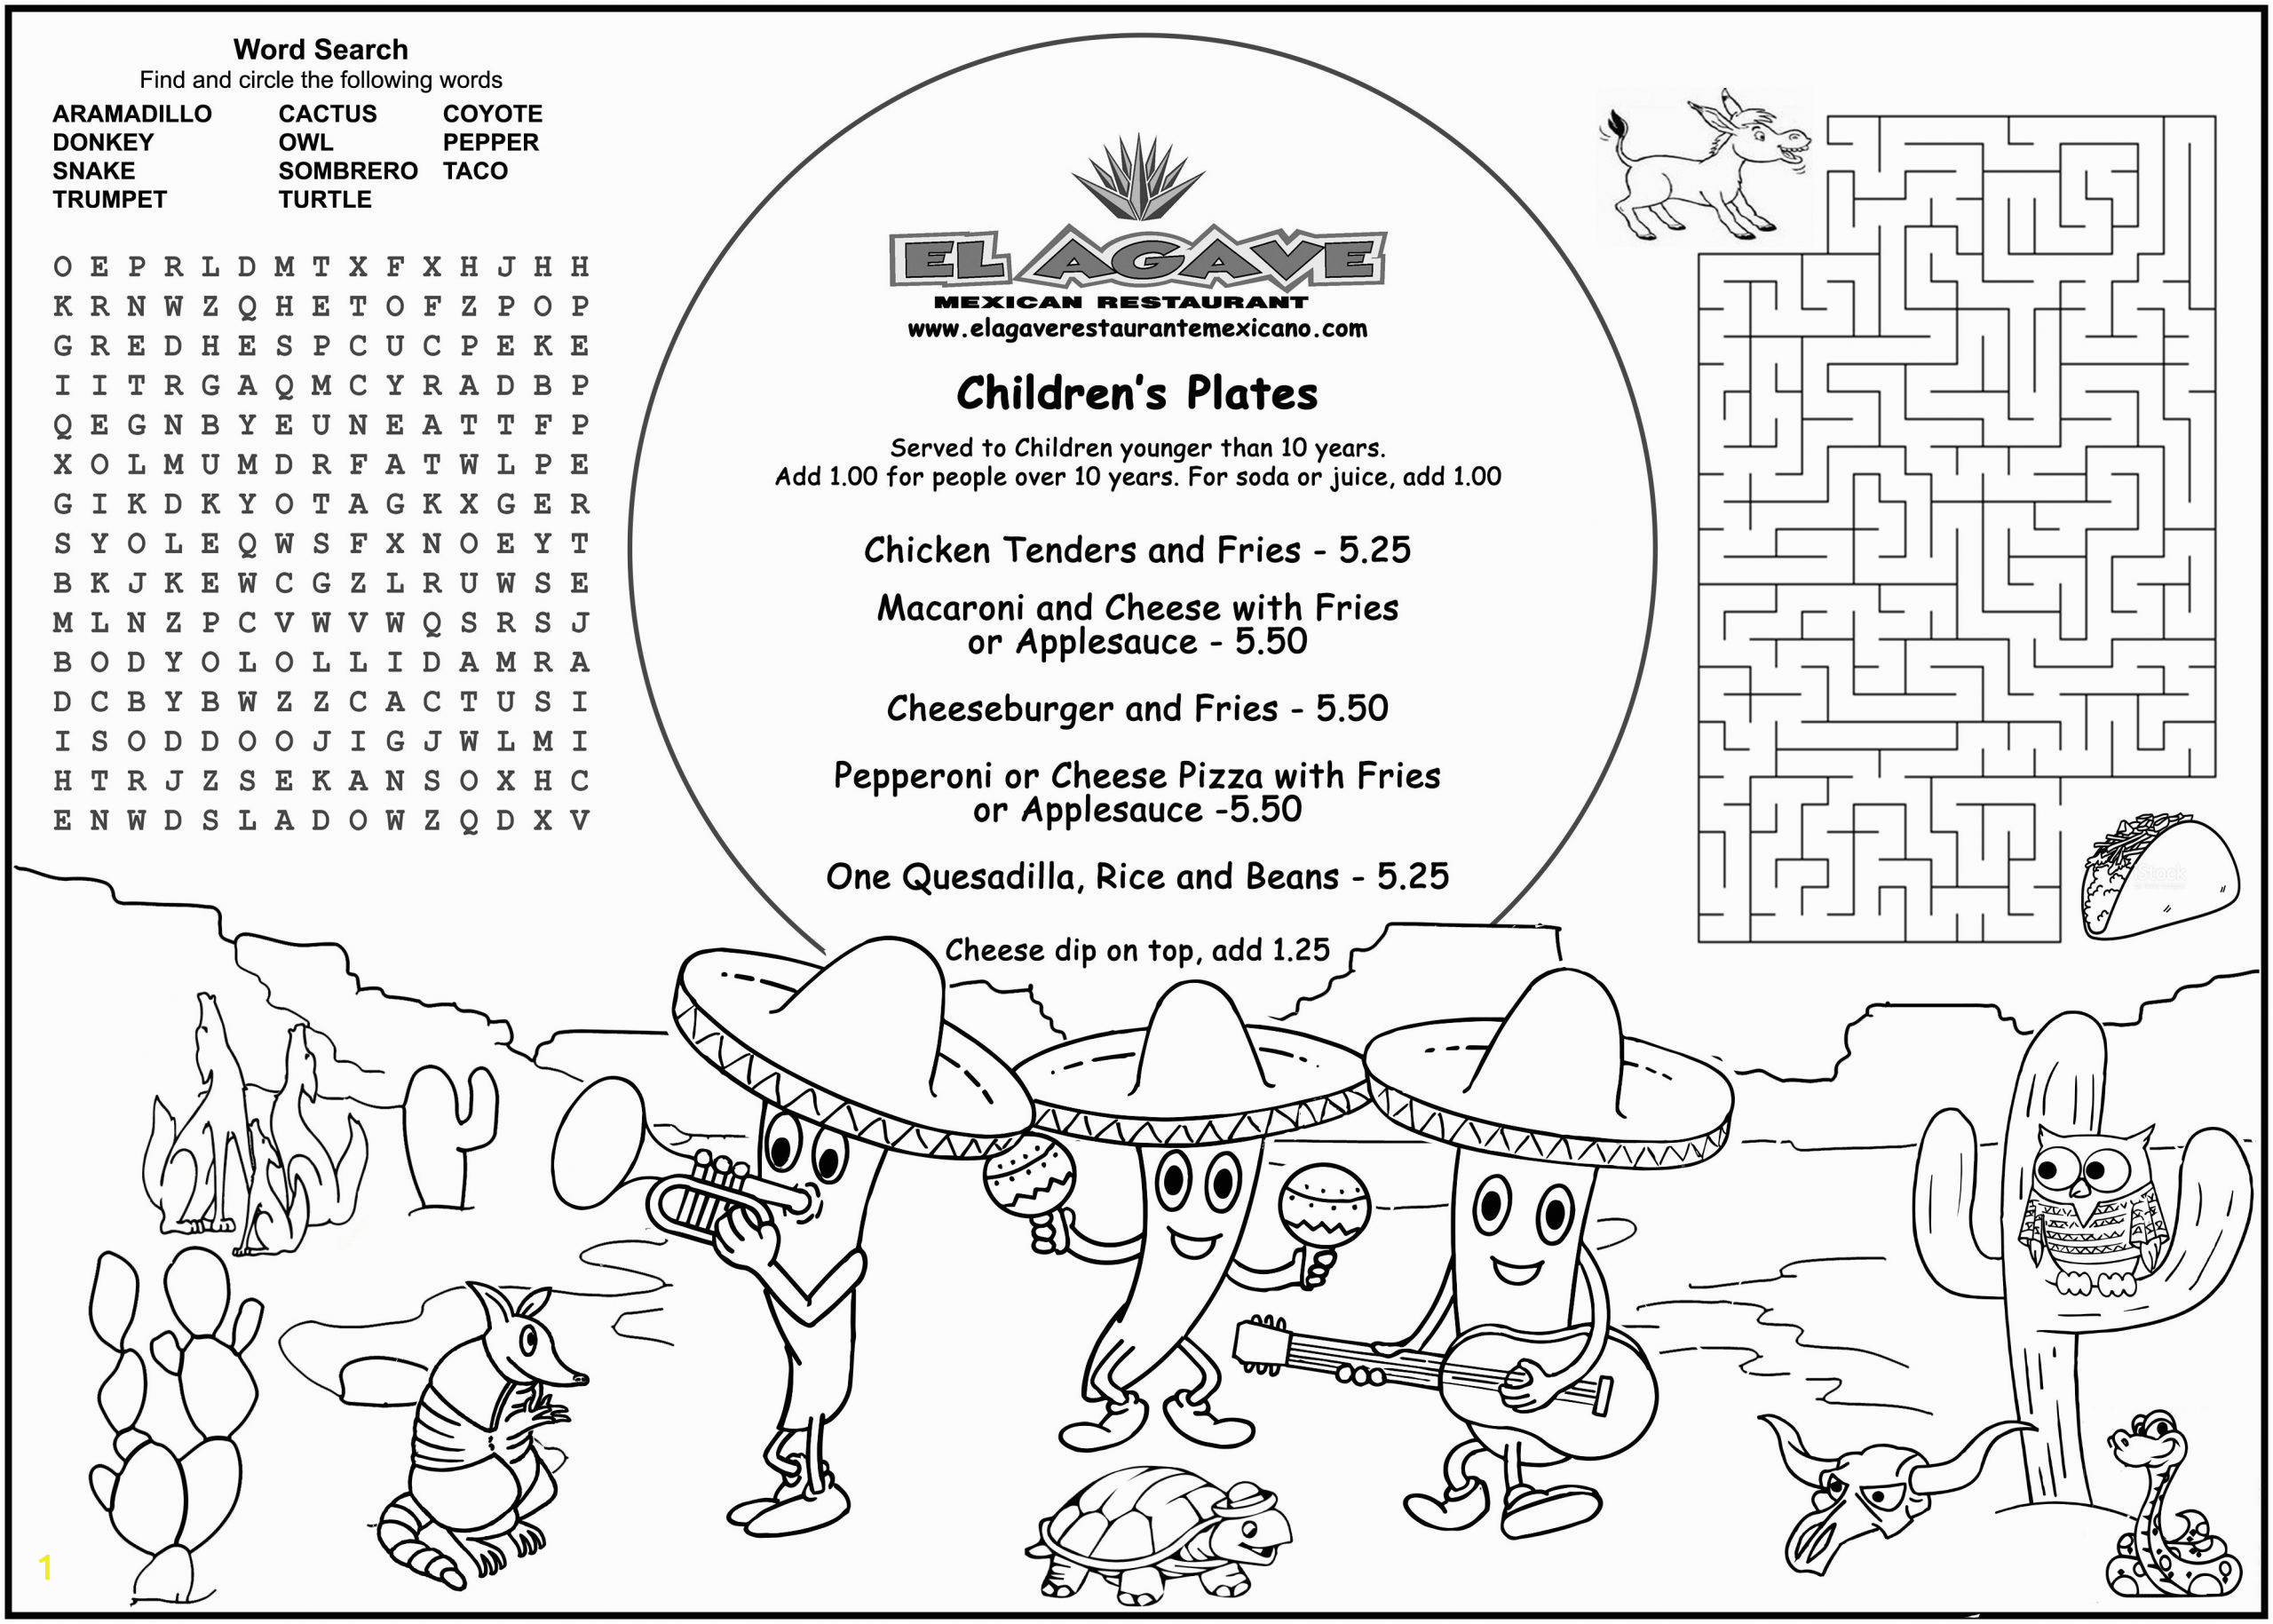 coloring pages for 9 to 10 year olds fresh children s menus of coloring pages for 9 to 10 year olds scaled